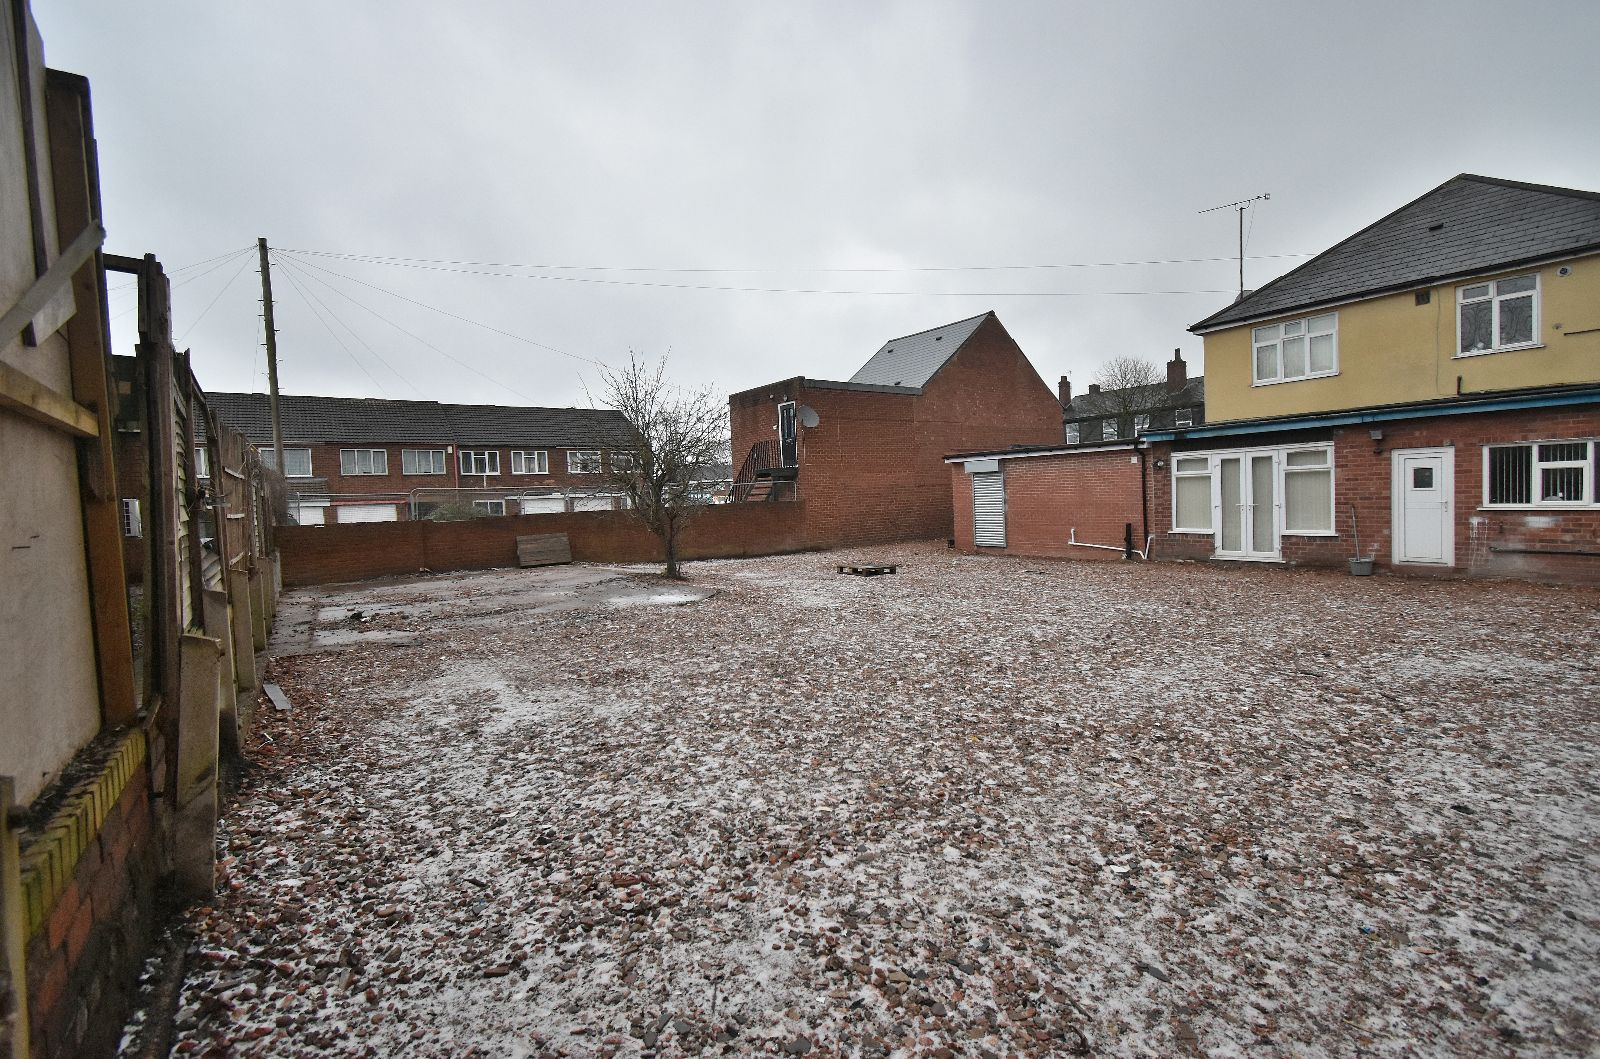 Yard to Rear, Dudley Port,Tipton, DY4 7PP